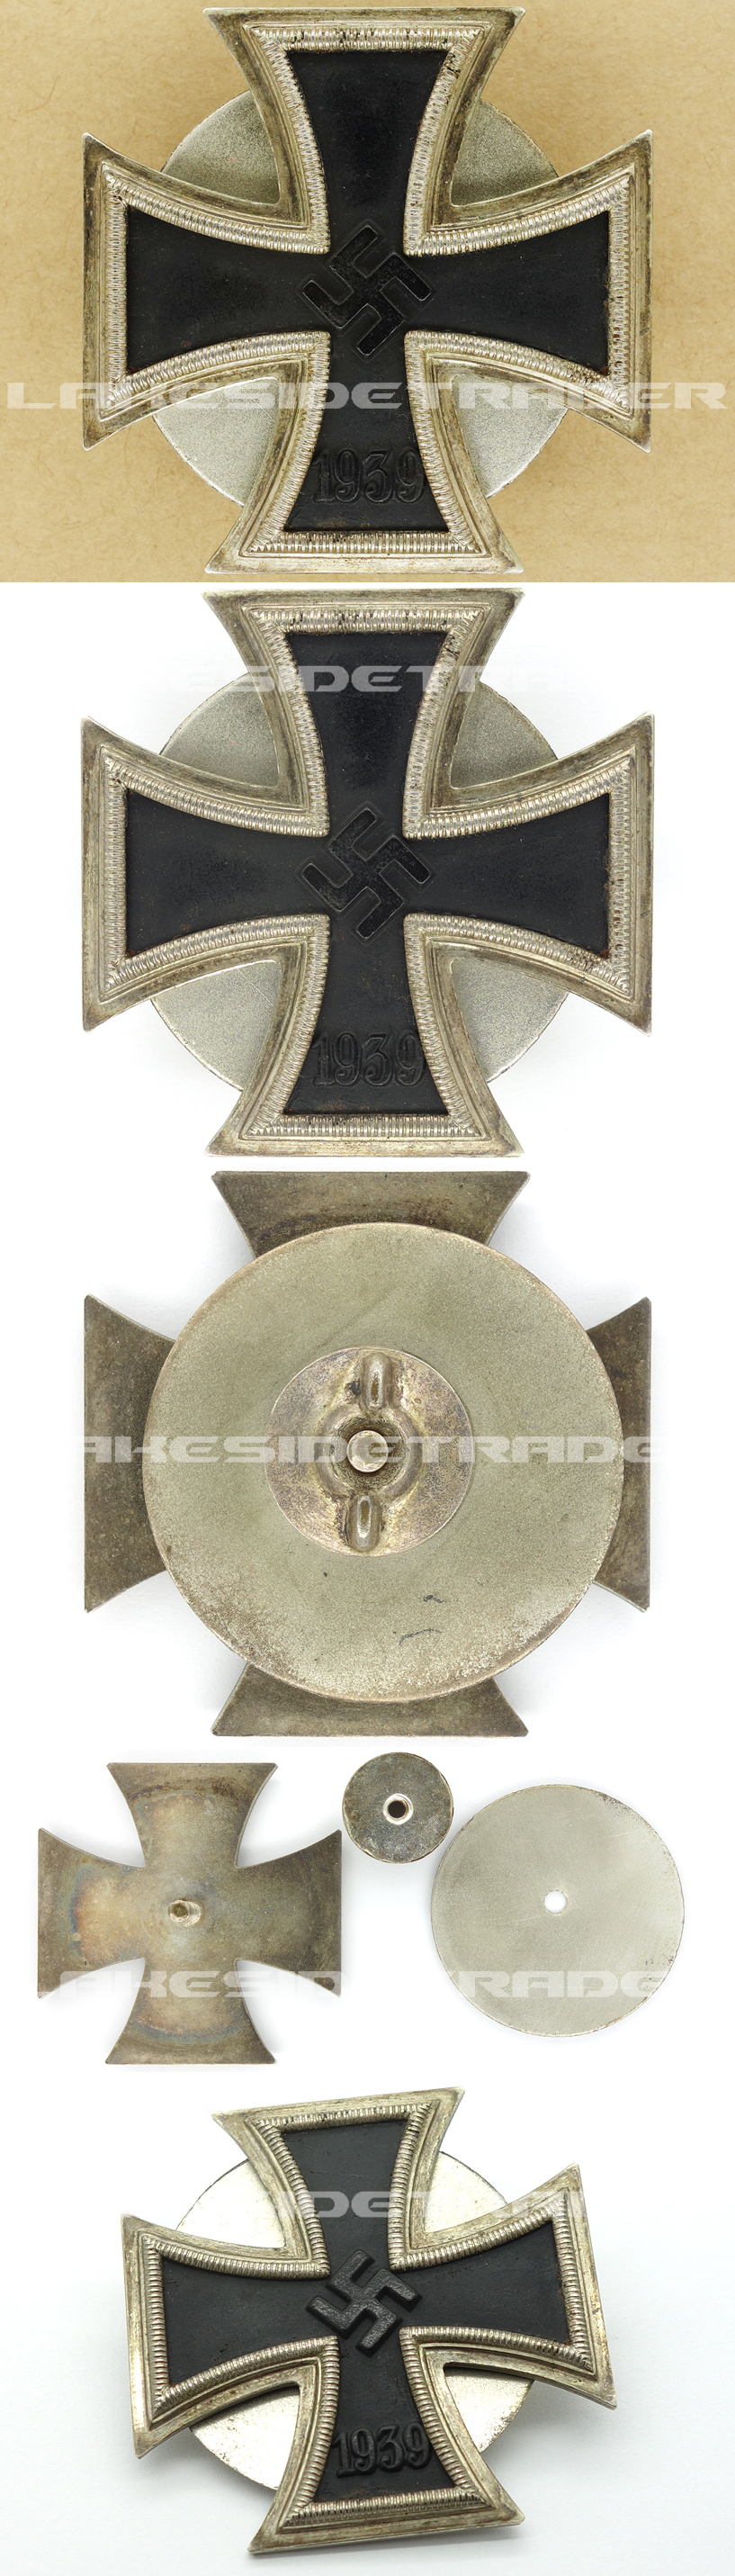 Rare ‐ 1st Class Iron Cross by Otto Schickle